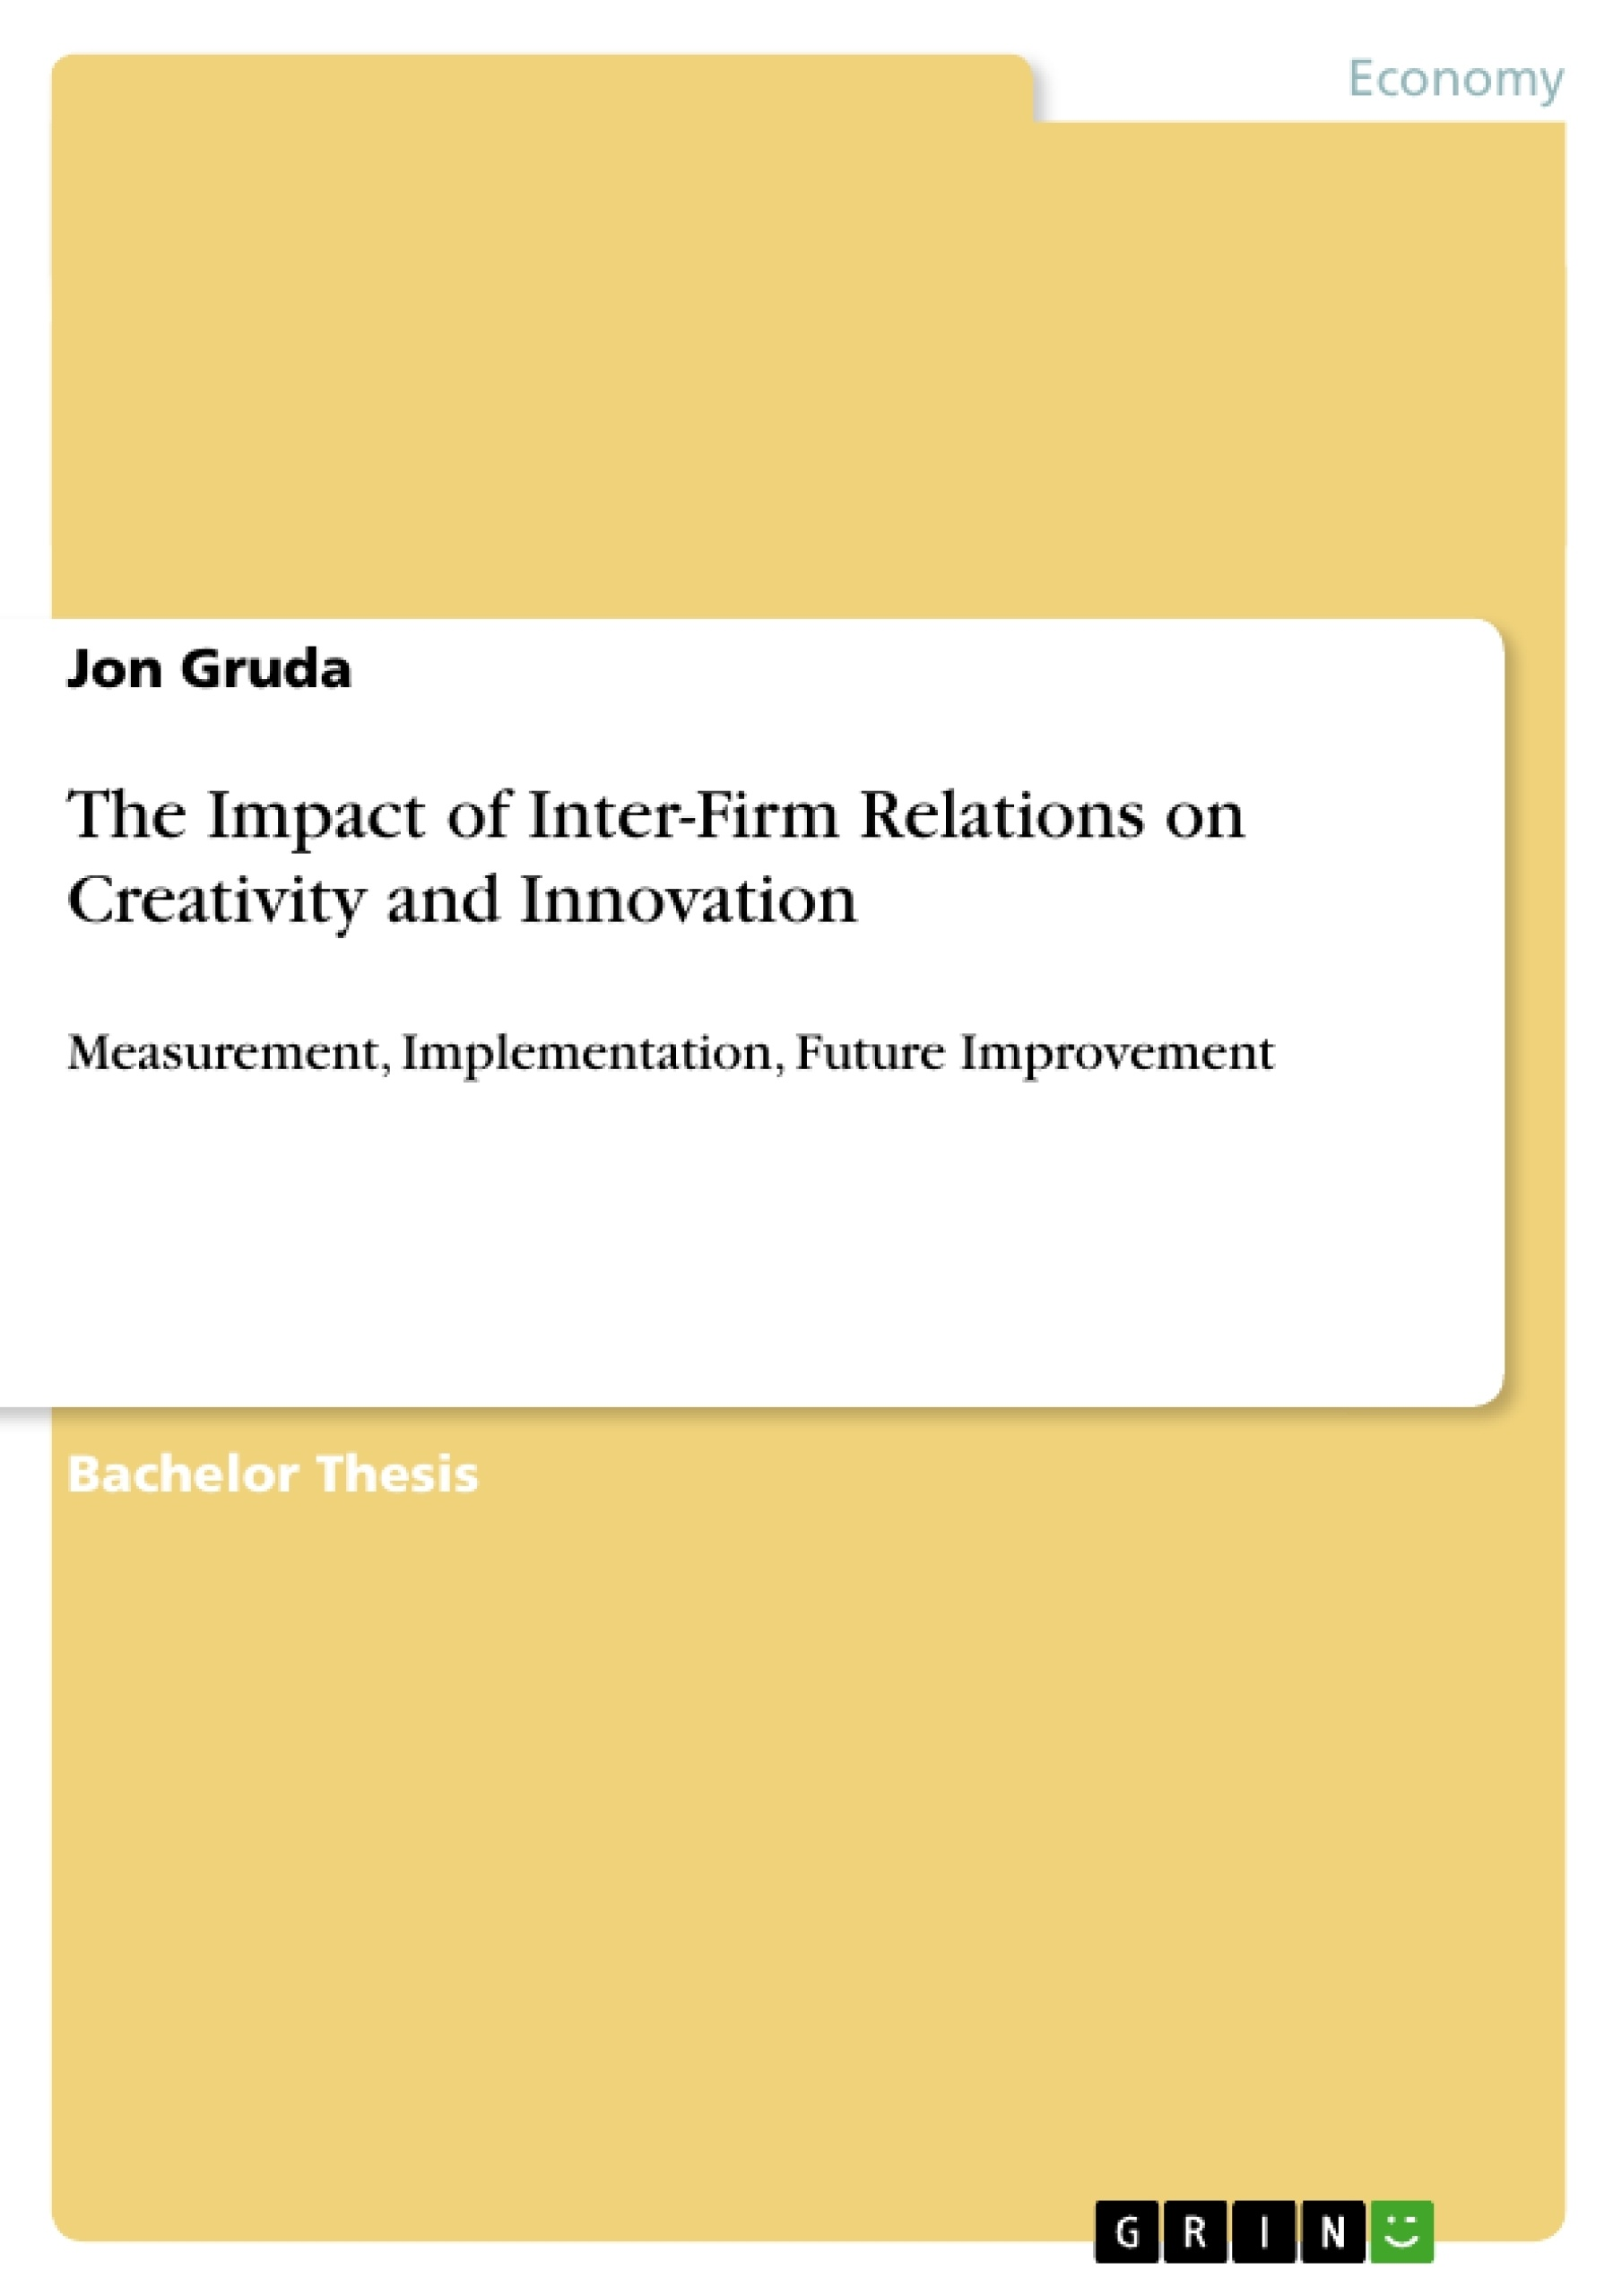 Title: The Impact of Inter-Firm Relations on Creativity and Innovation